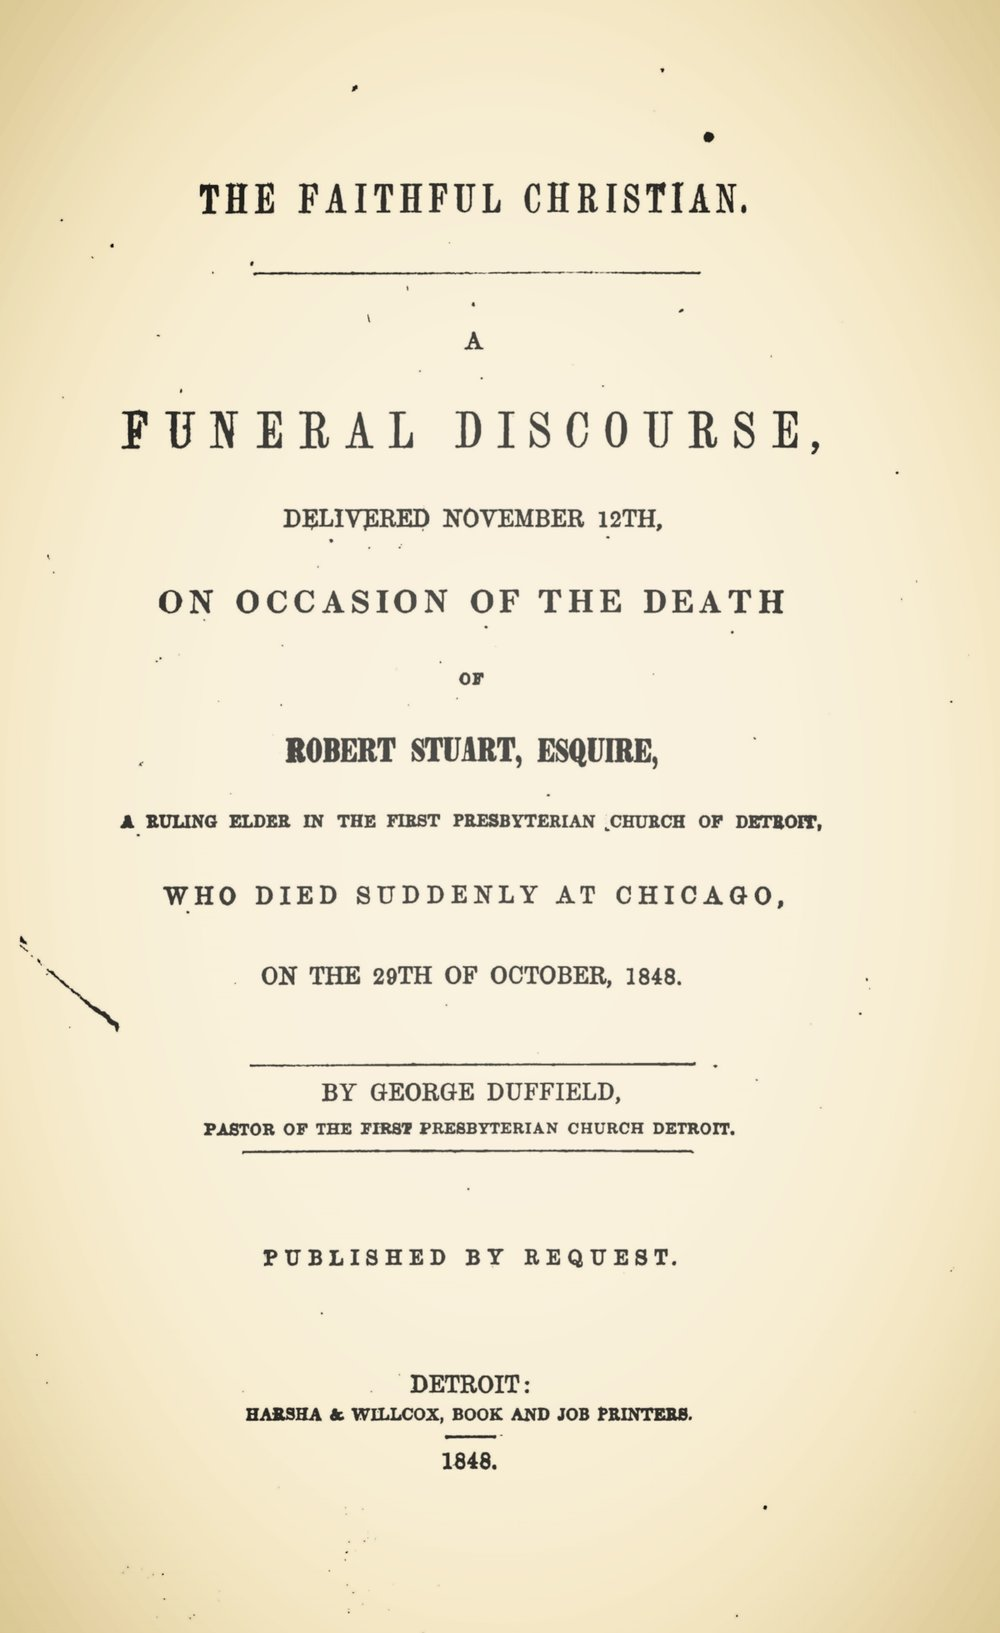 Duffield, IV, George, The Faithful Christian Title Page.jpg